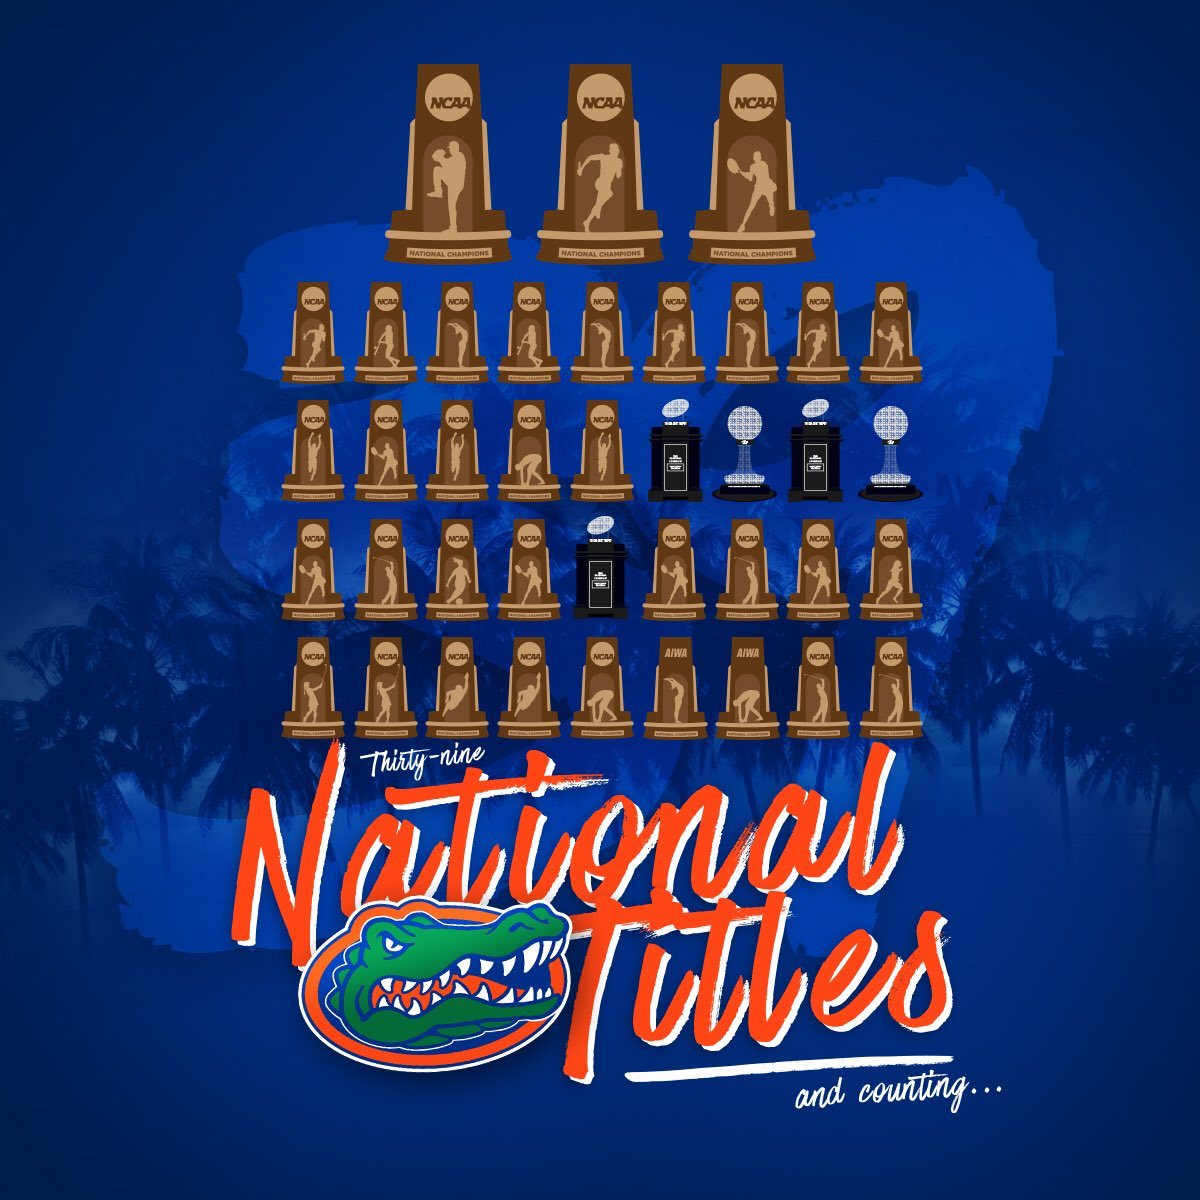 Guess we'll keep adding more shelves! 39 championships... so far. #GoGators #EverythingSchool https://t.co/62lmMPt3W4